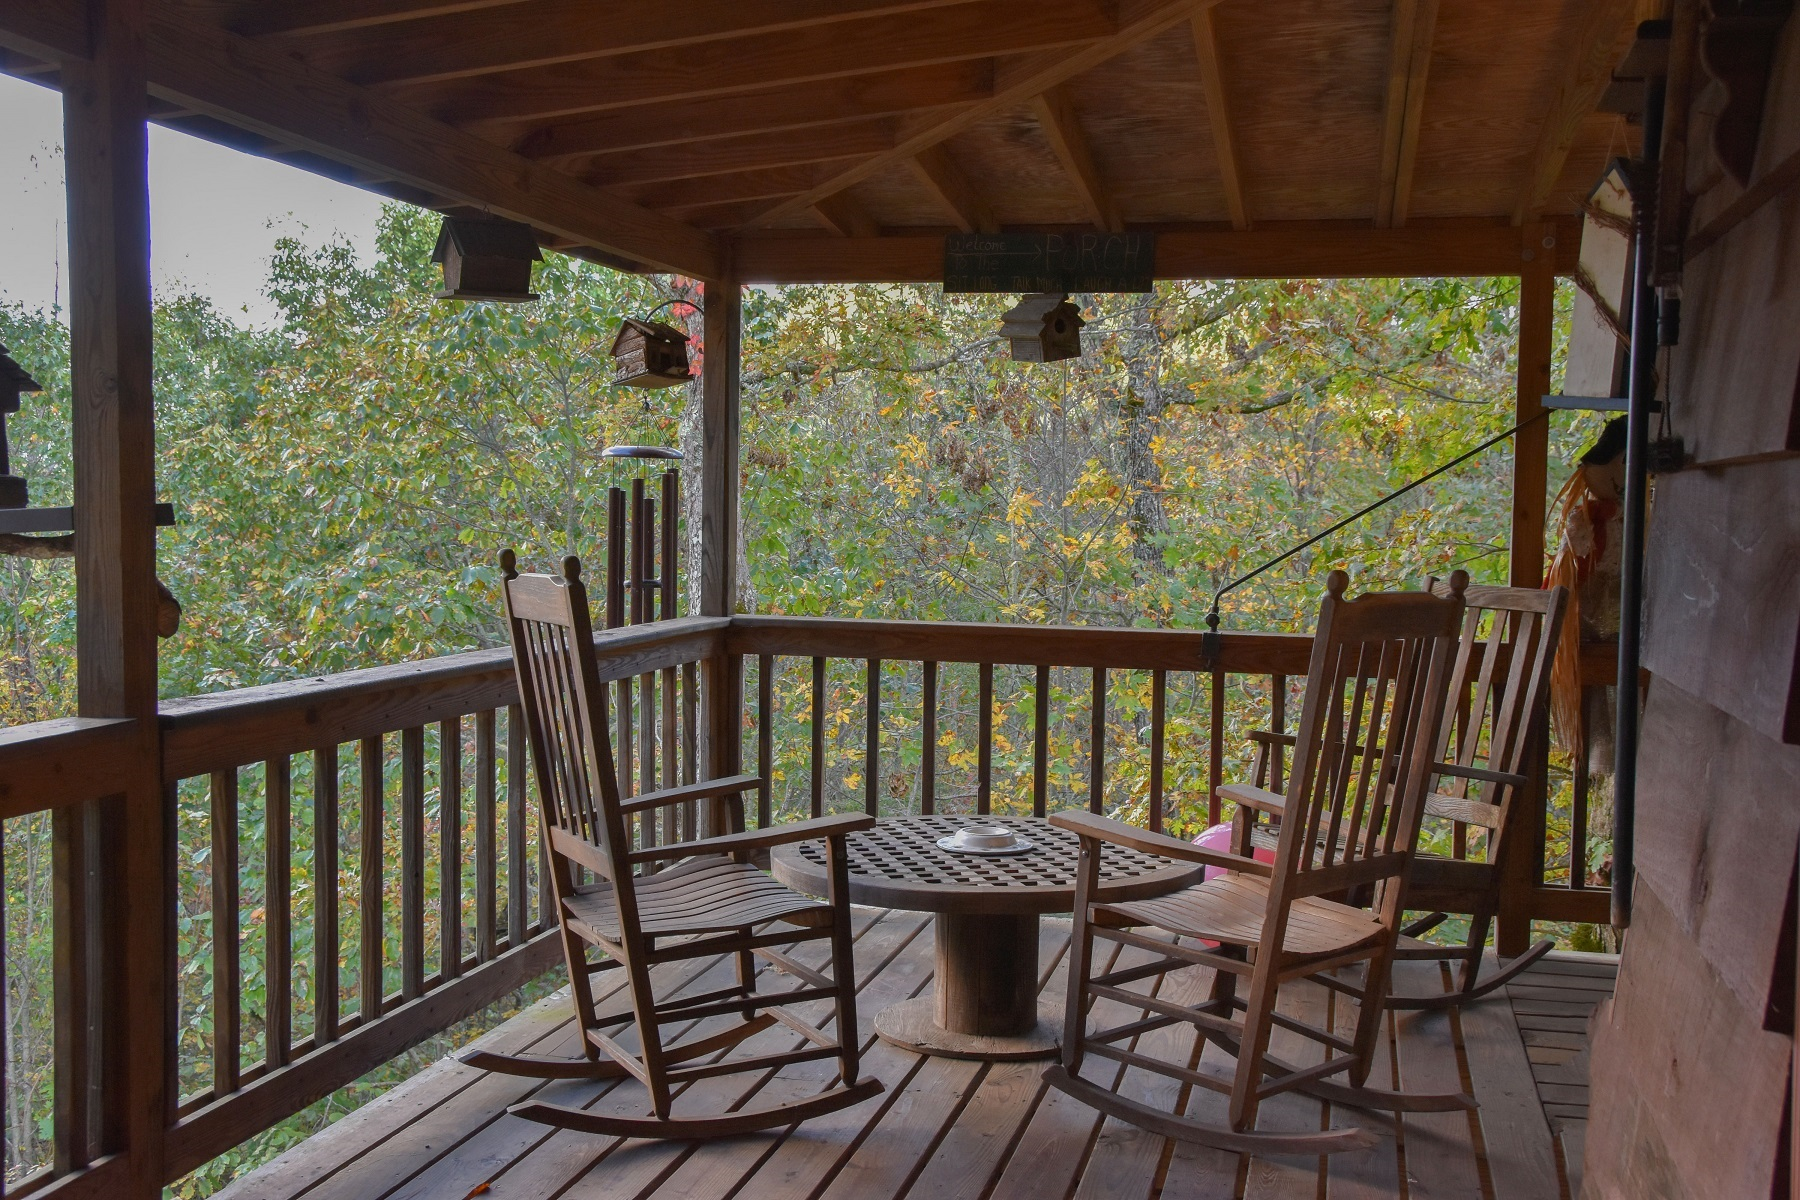 Covered deck porch mountain view home